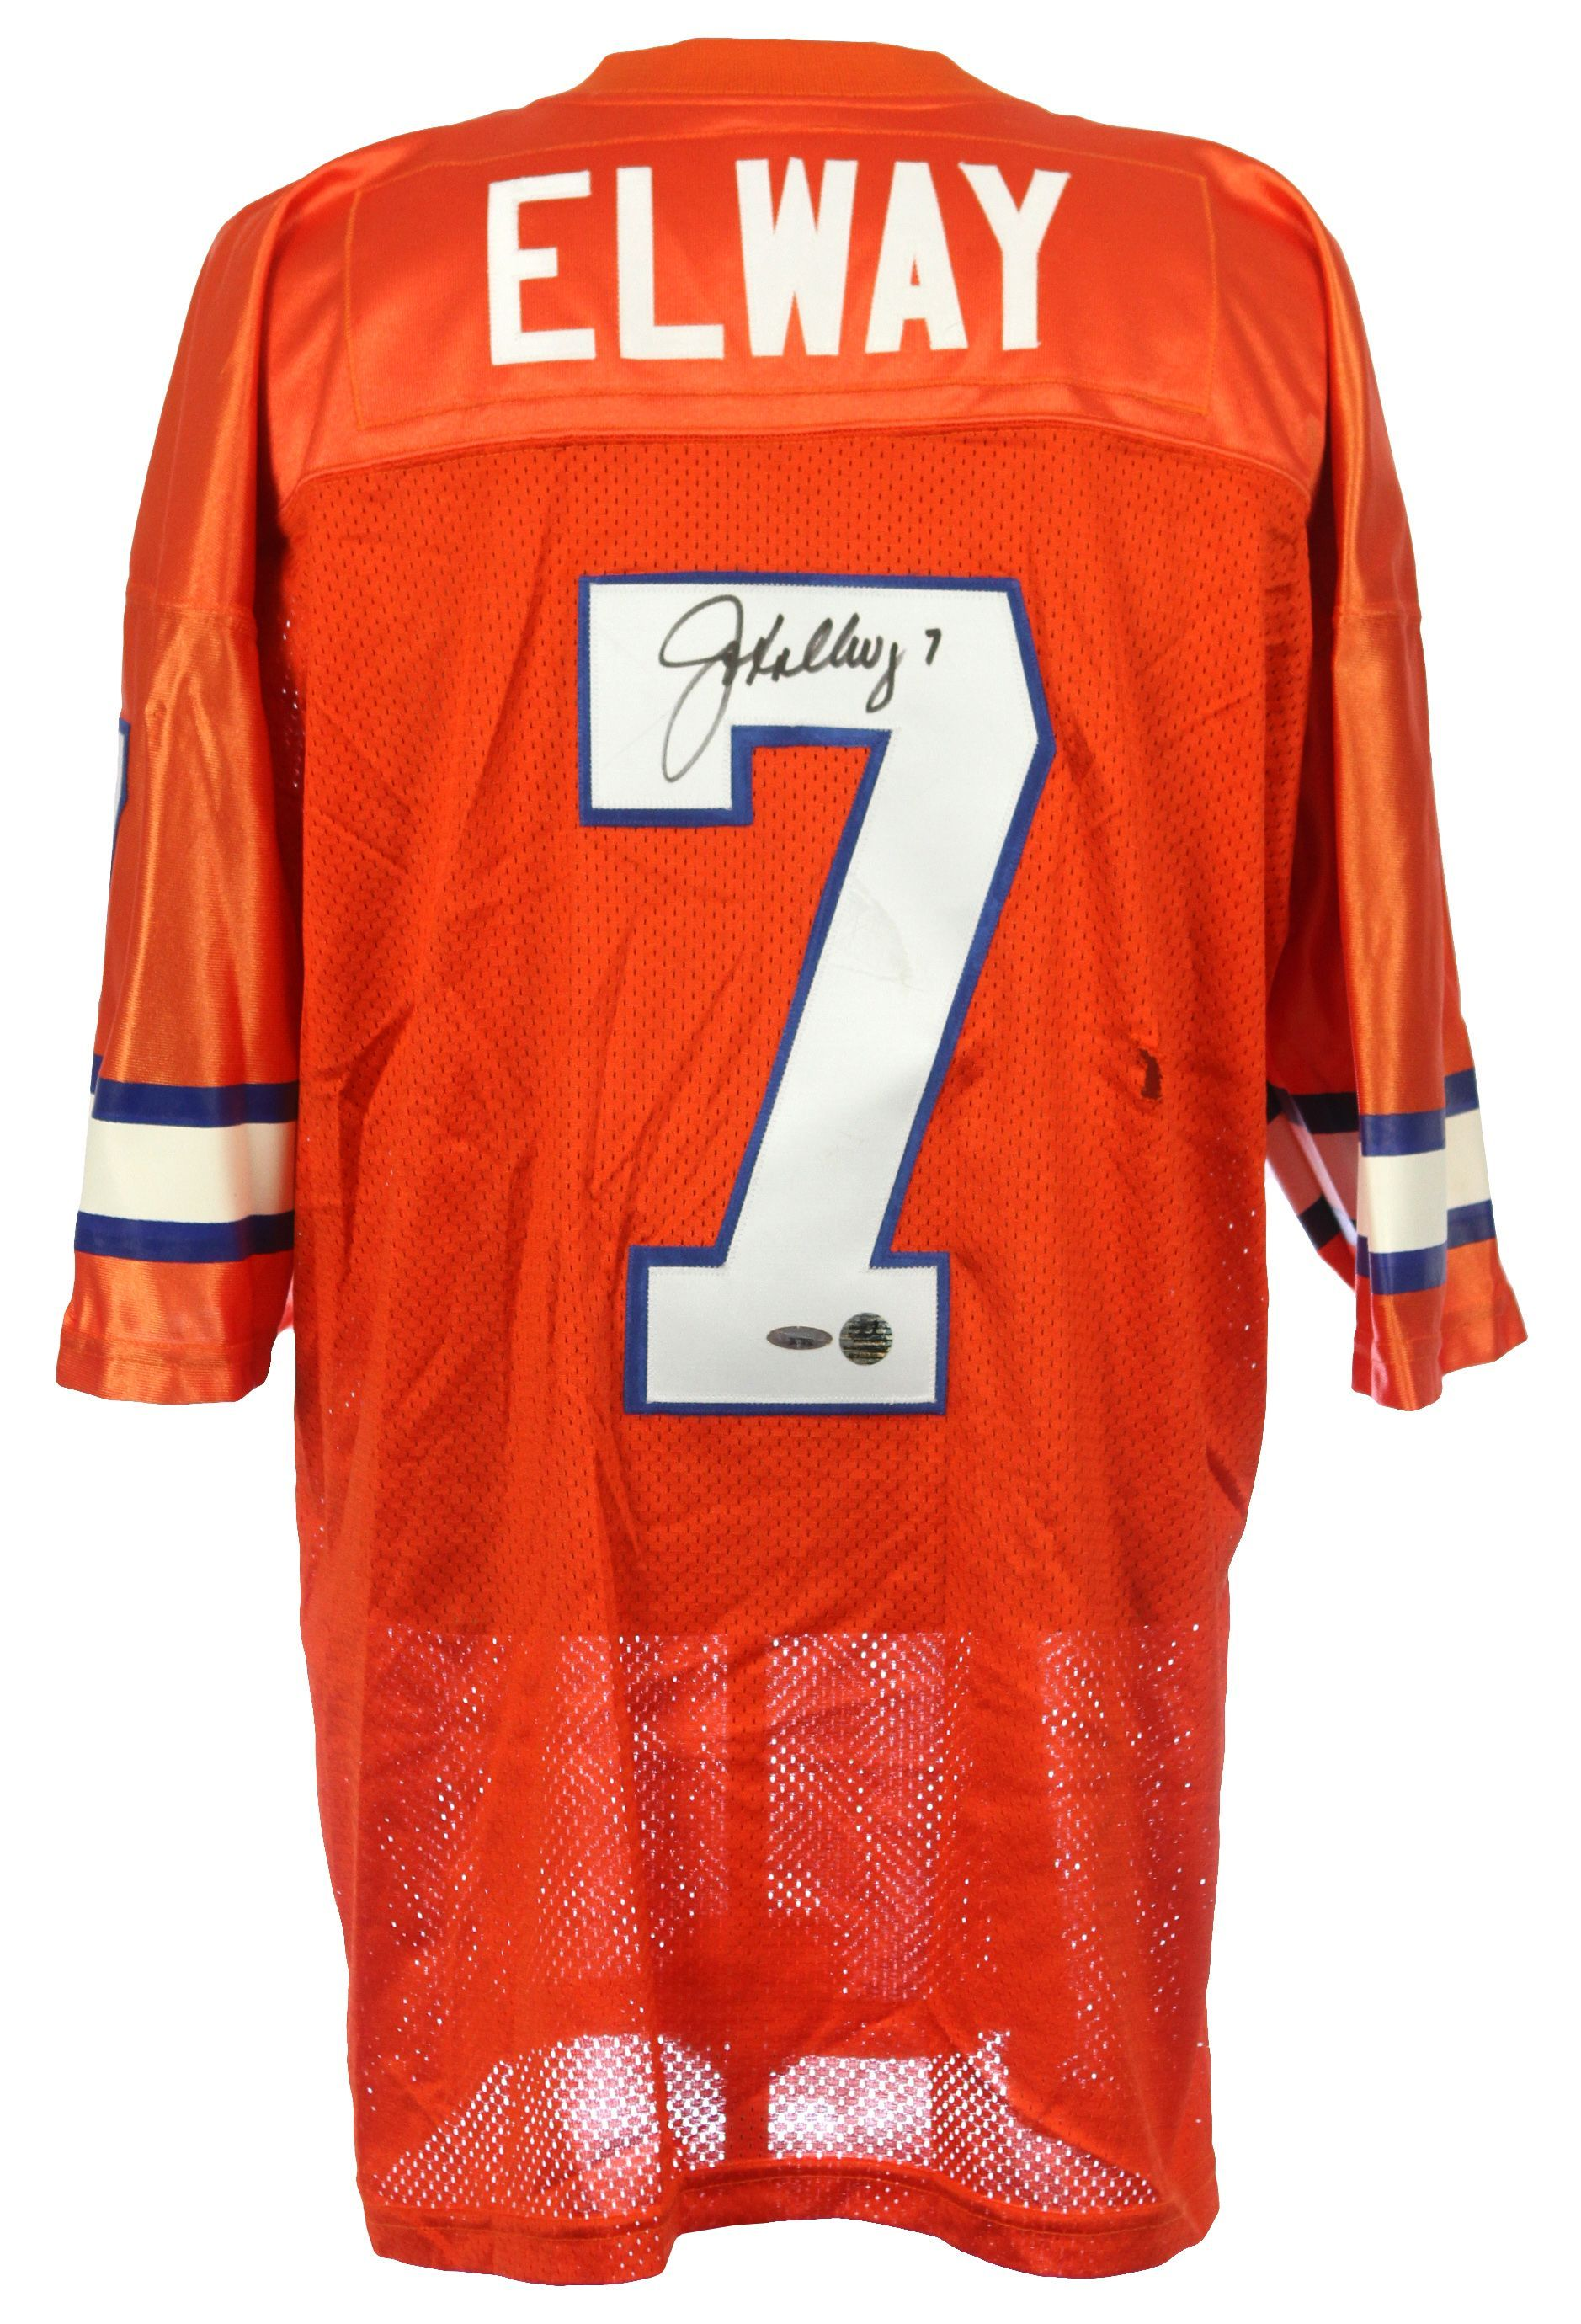 save off faa41 1d6ea Lot Detail - John Elway Signed Denver Broncos Orange Crush ...